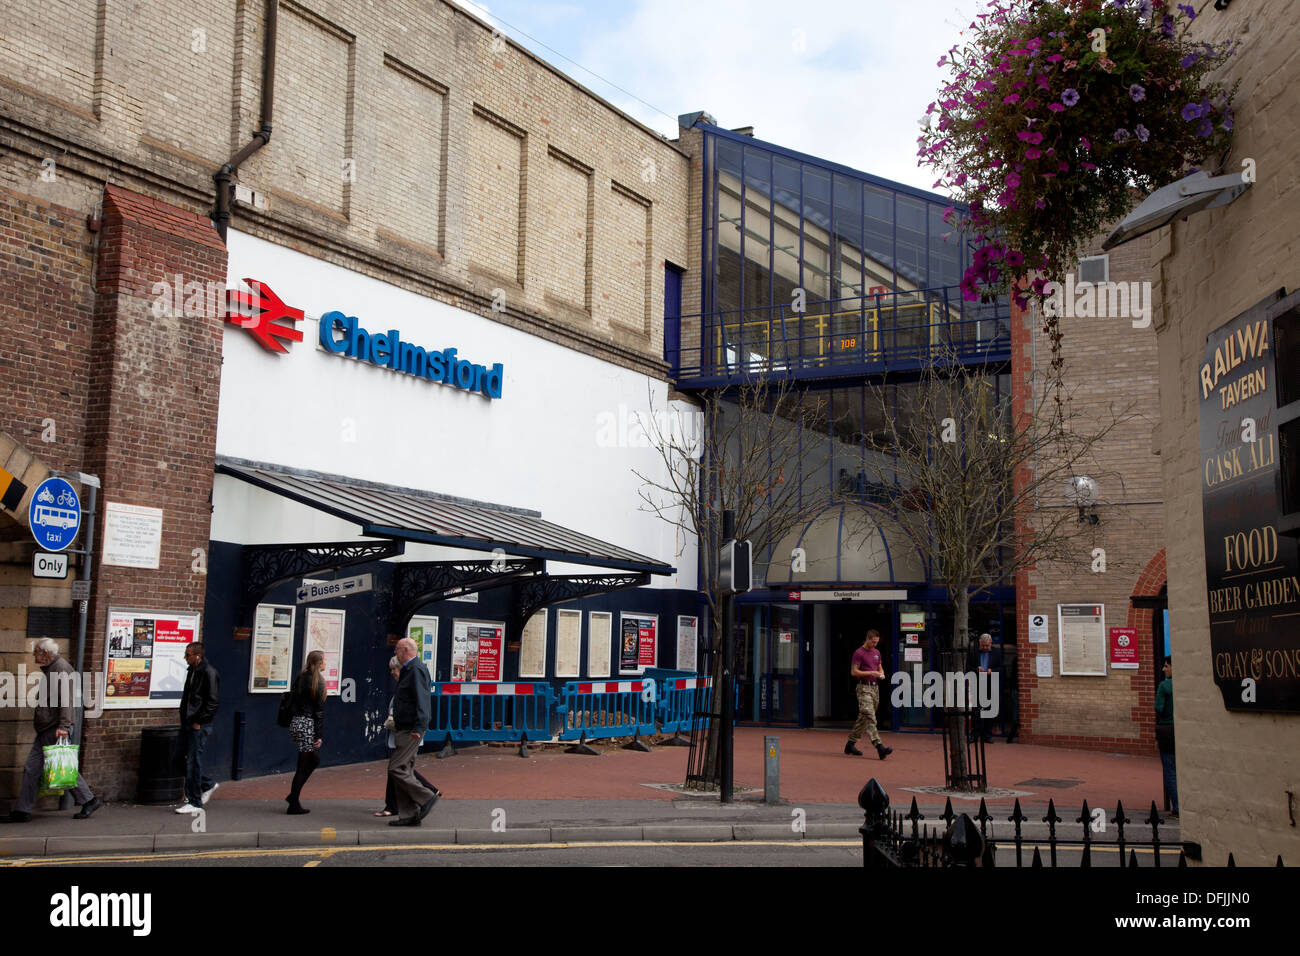 Chelmsford Train Station in Essex - Stock Image